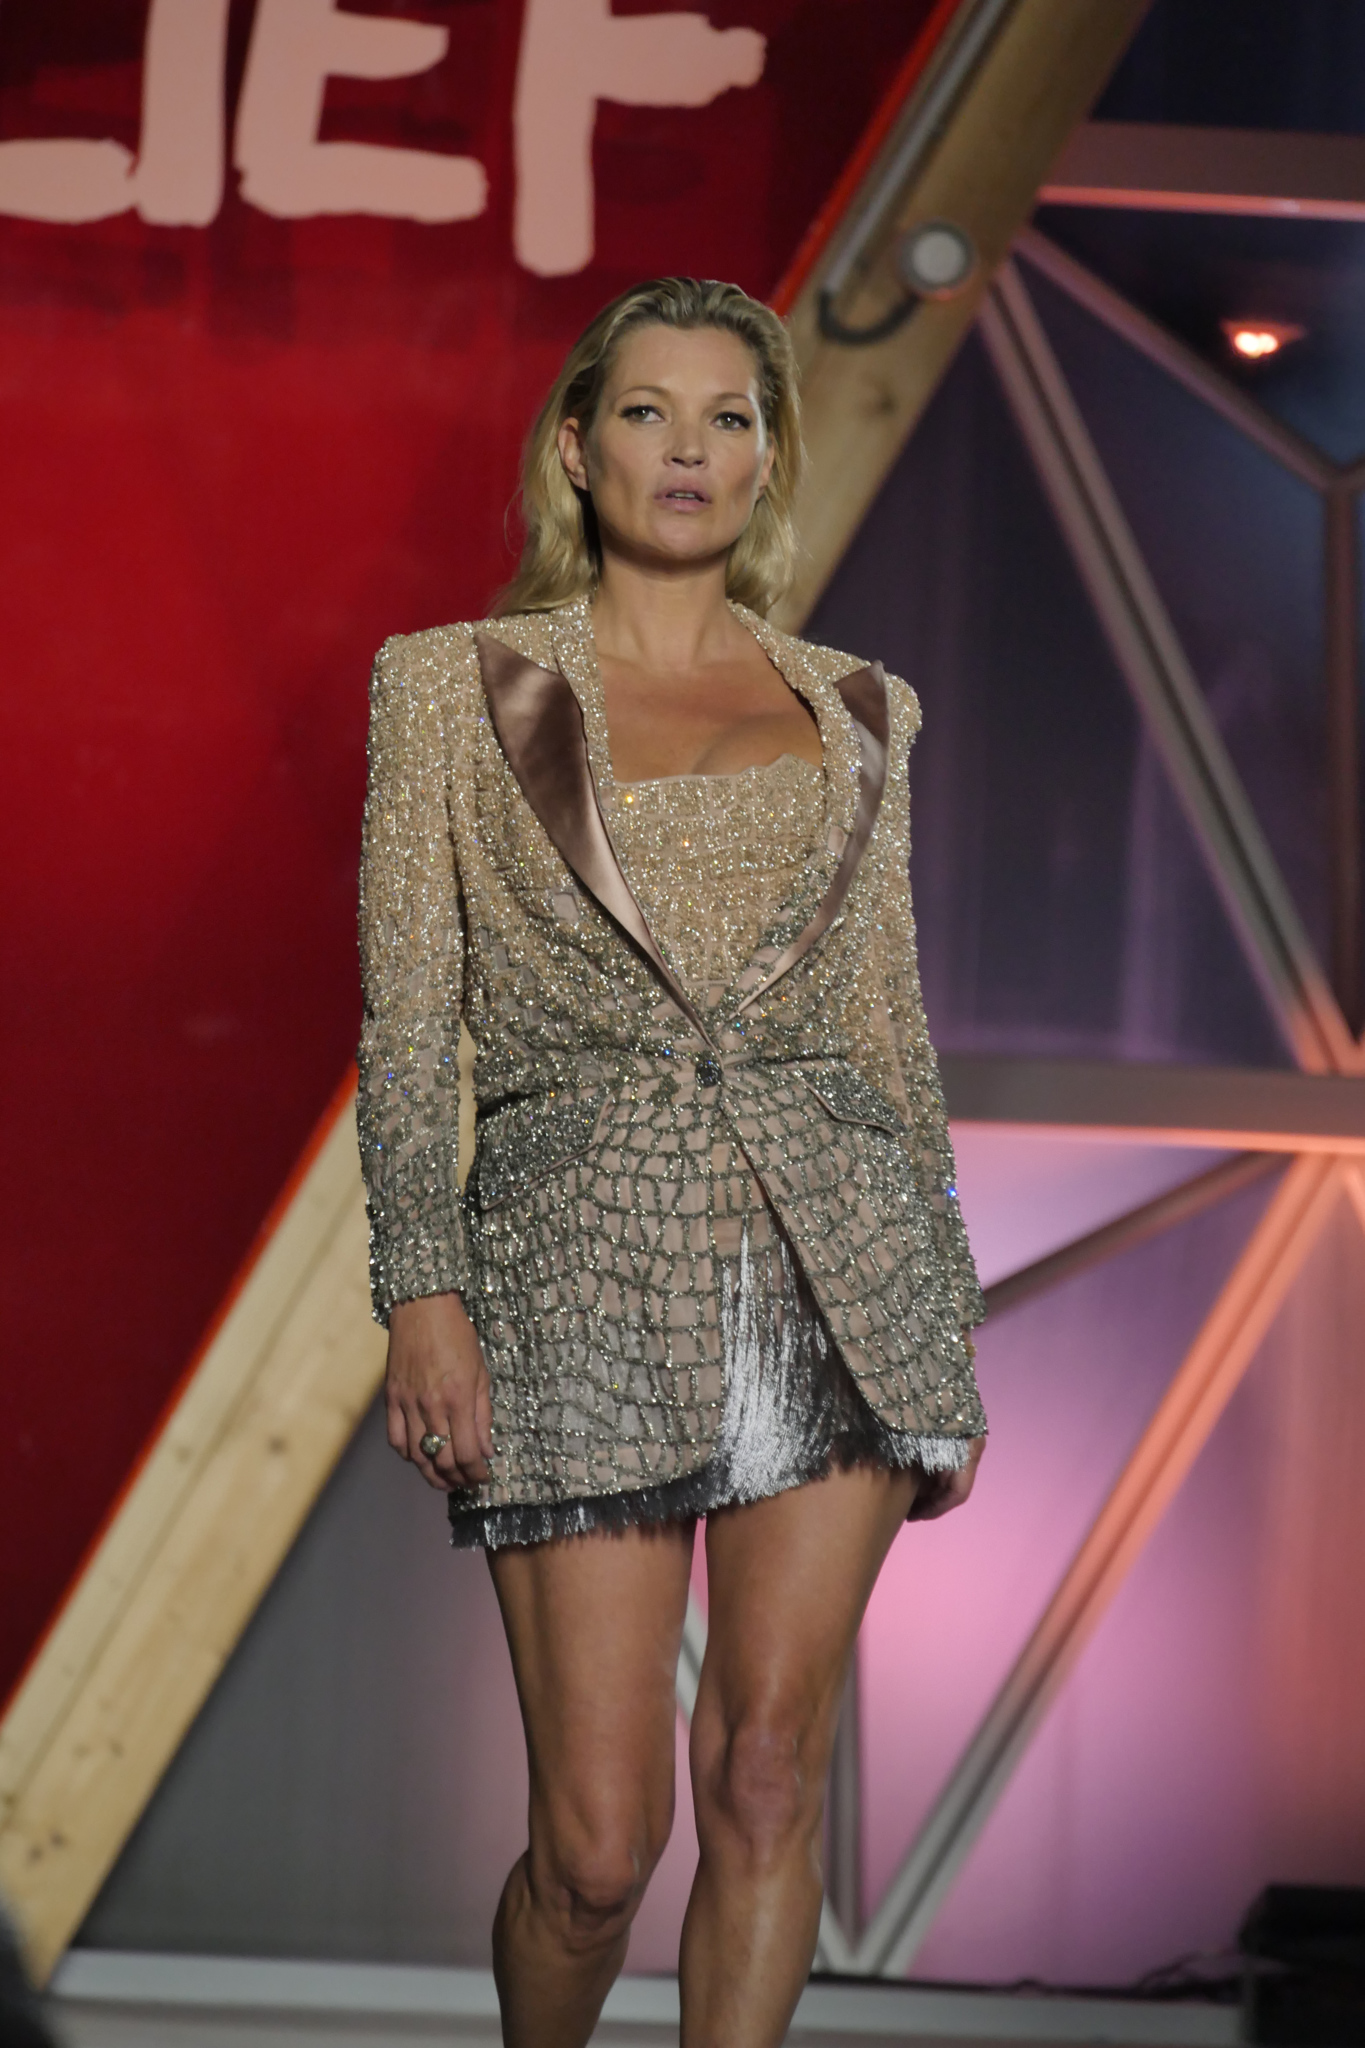 Kate Moss on the catwalk at the Fashion for Relief event in Cannes